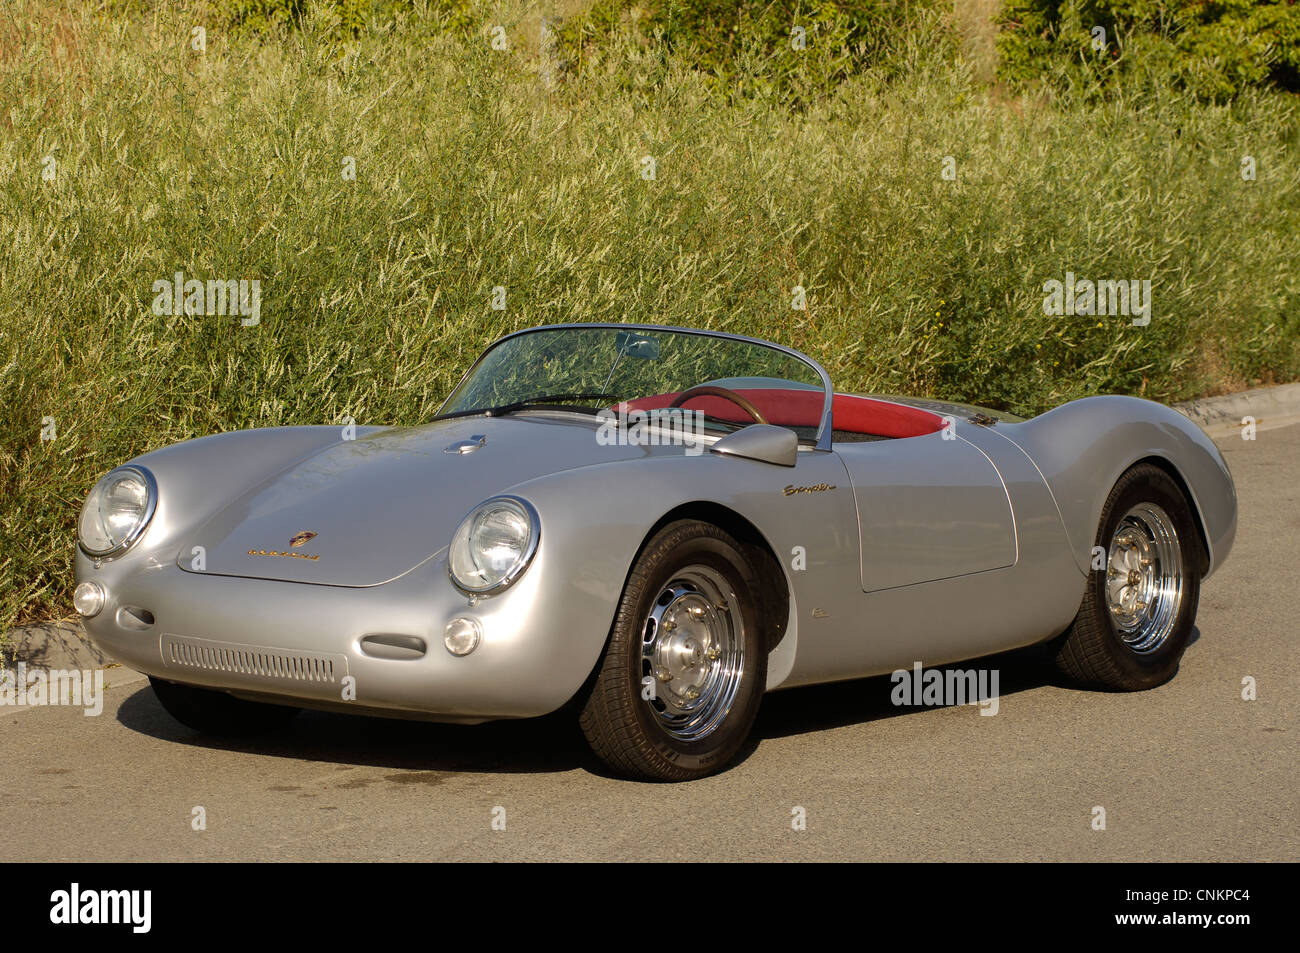 Porsche 550 Spyder James Dean Replica Stock Photo